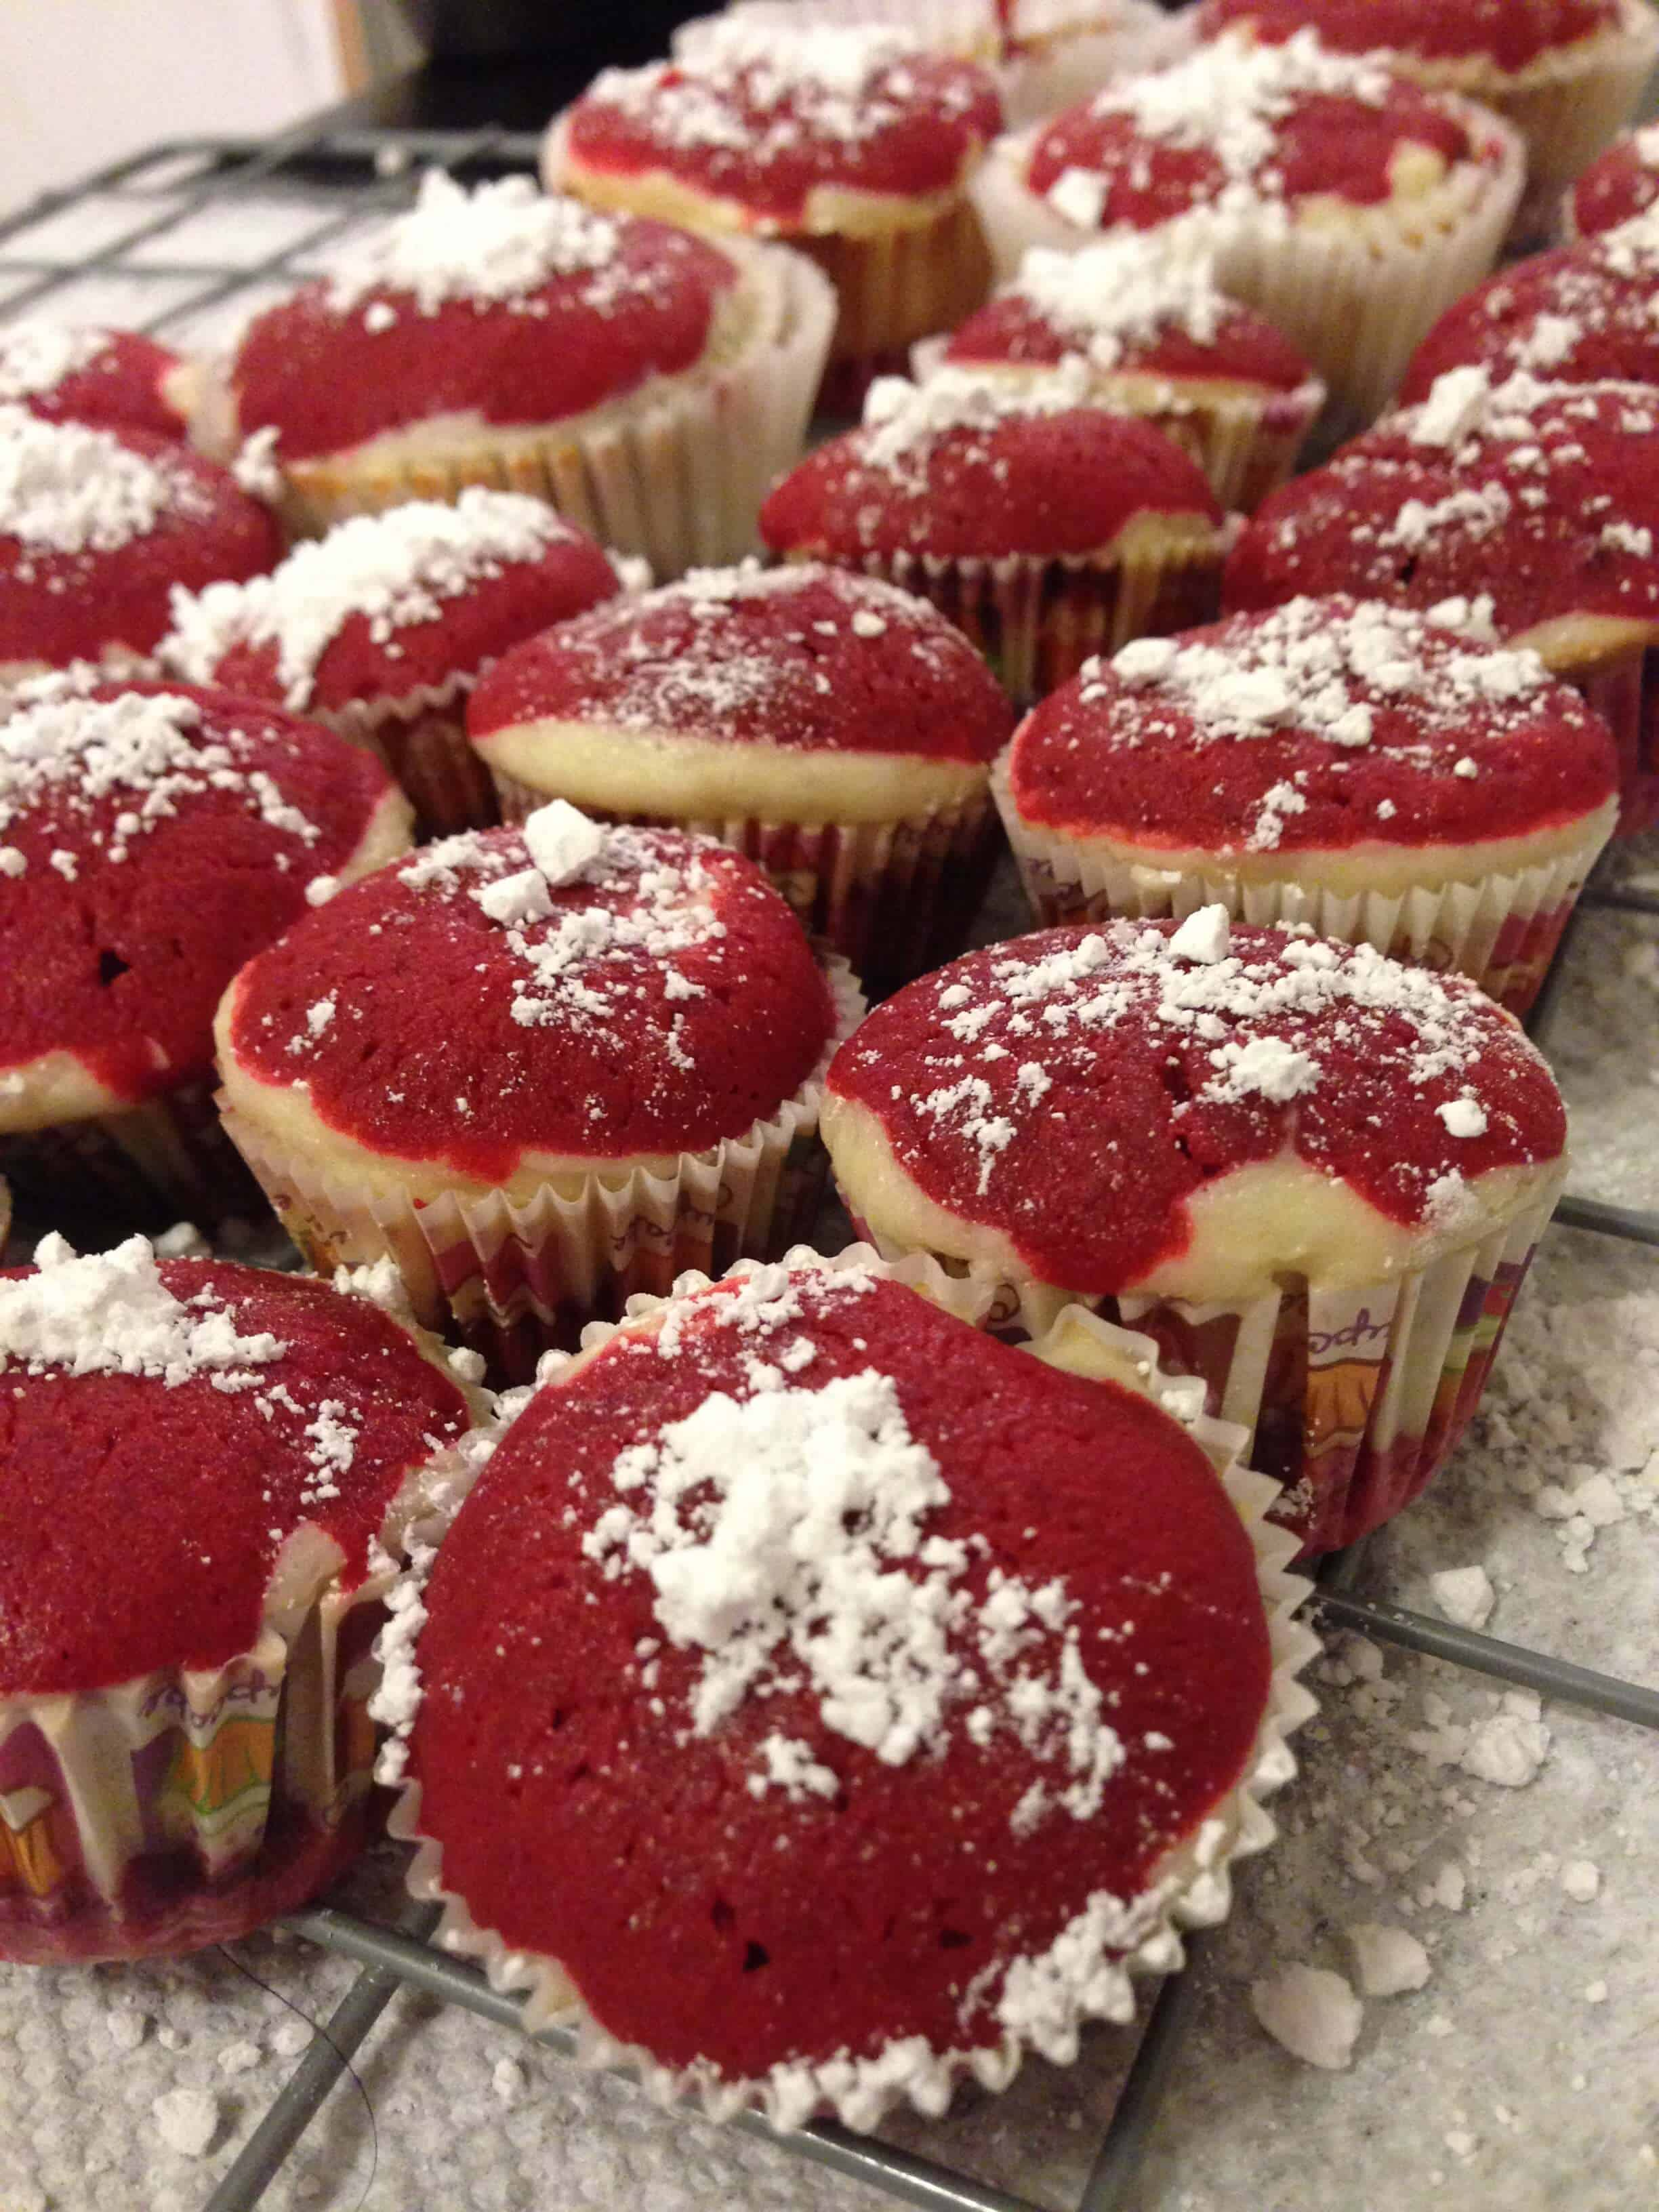 image of layered red velvet cupcakes